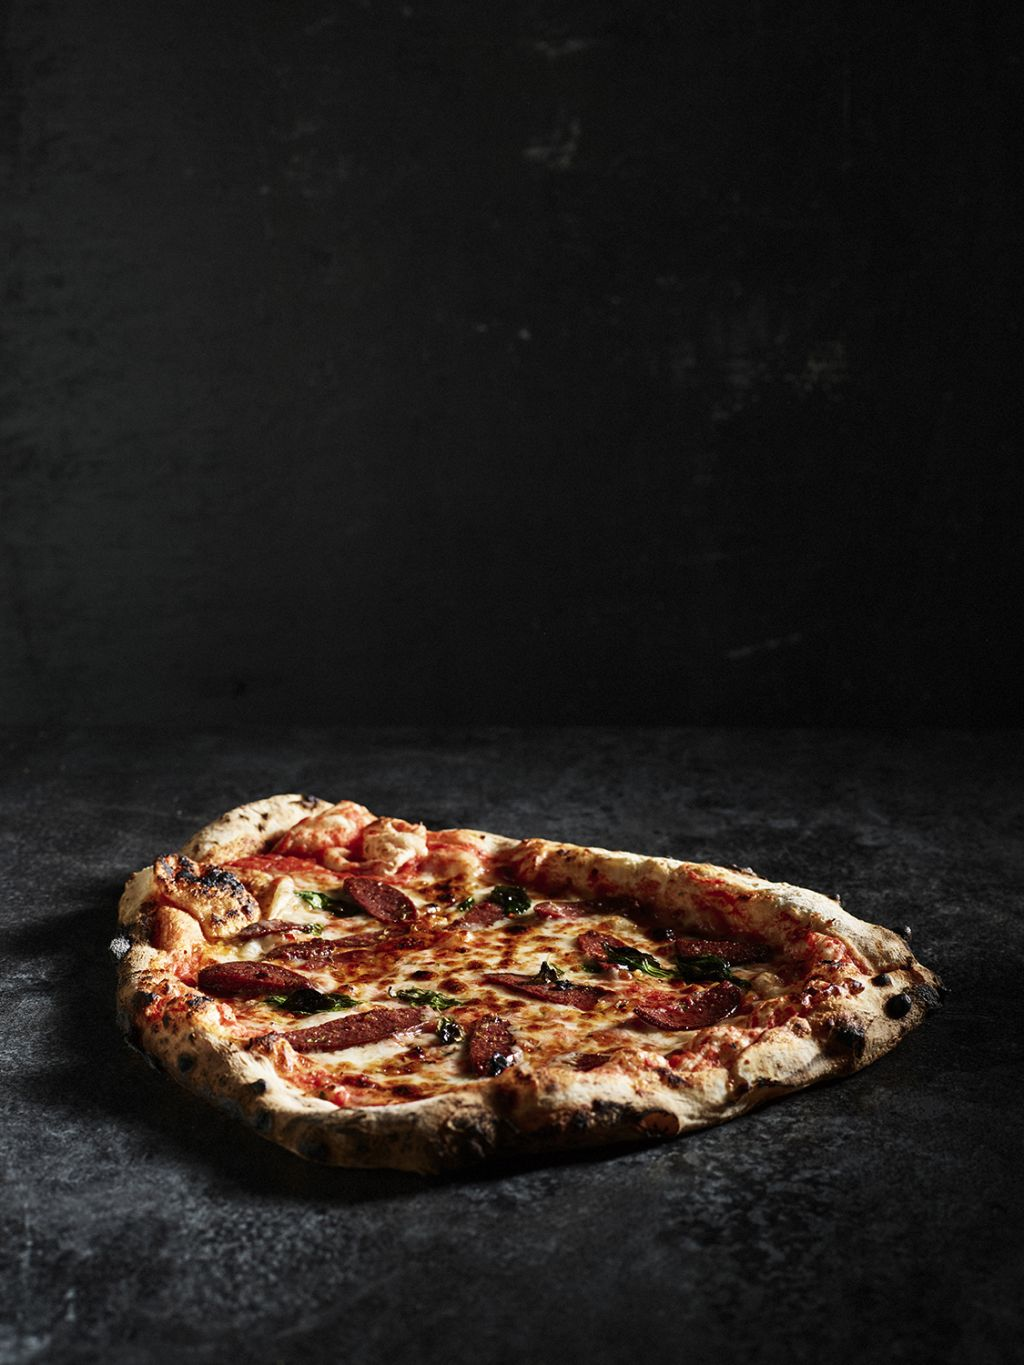 Lapland food, pizza | Petri Teppo photographer of the month